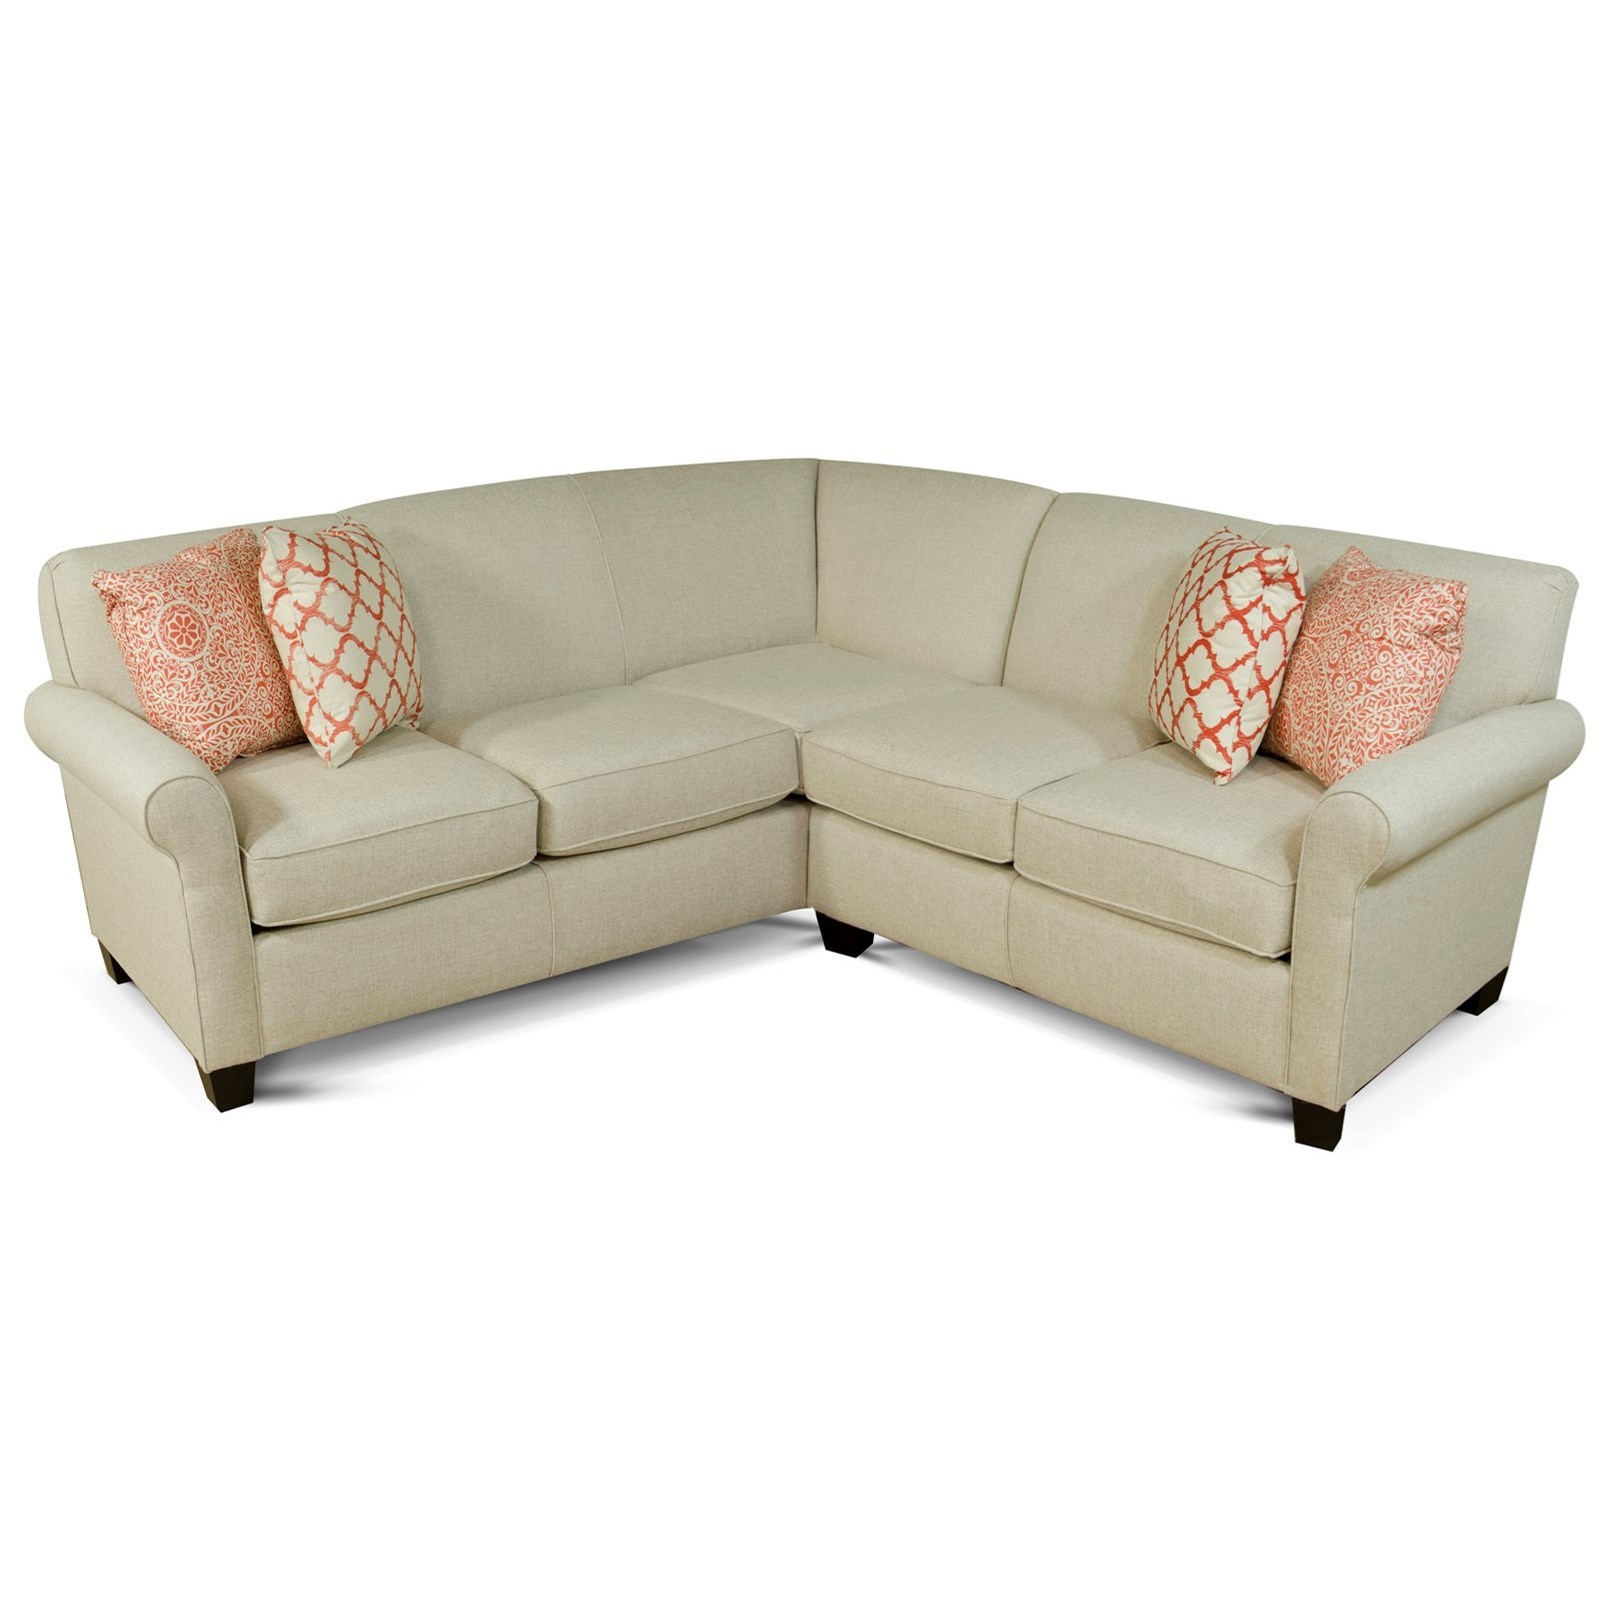 England Angie Small Corner Sectional Sofa Reeds